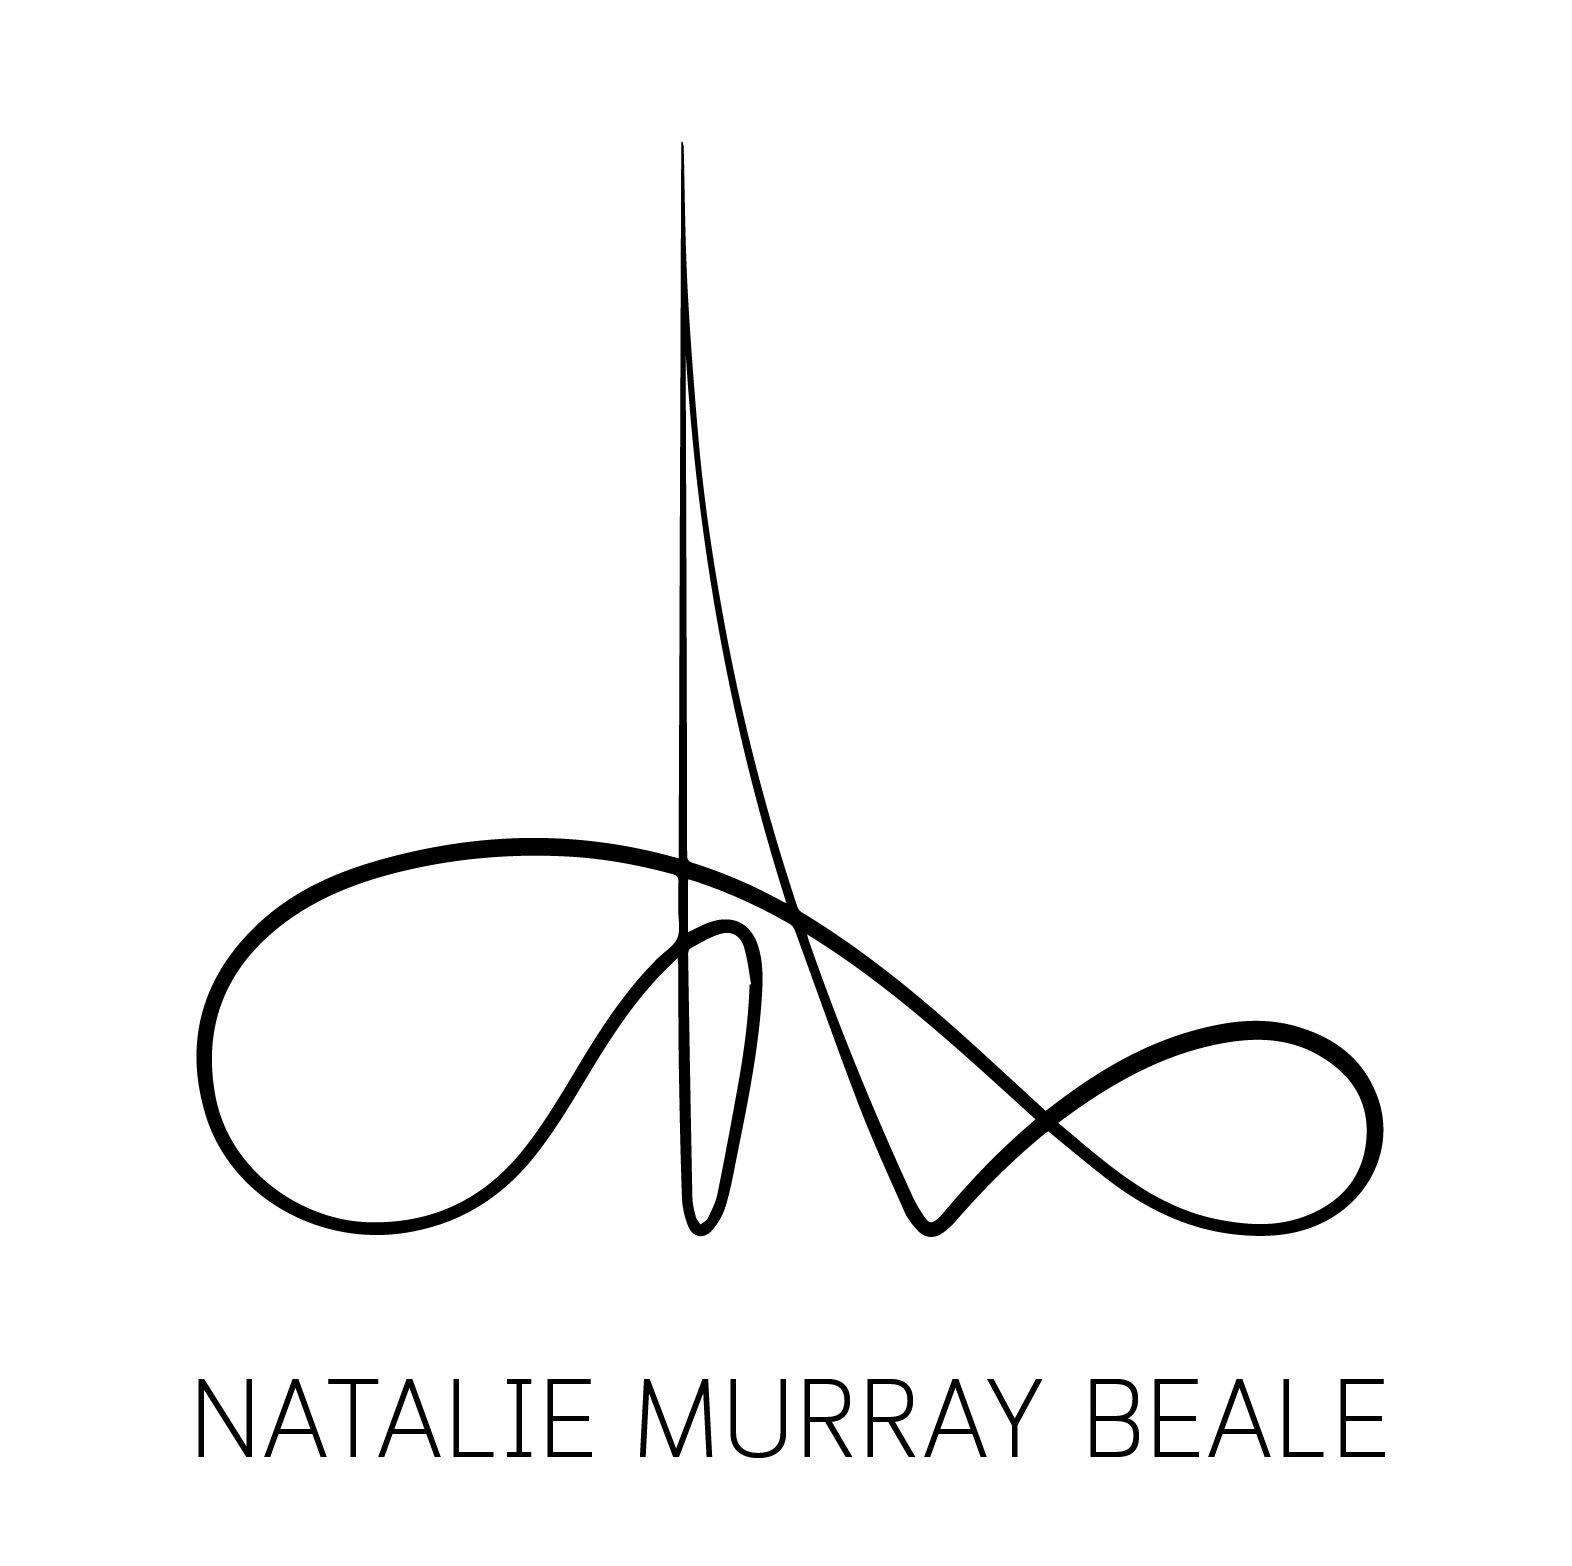 Logo Design for a conductor/creative director Natalie Murray Beale   Both of her roles involve orchestrating and leading the team. Therefore, the logo is a visualisation of a conductor's hand gesture. Shaped as a triangle it also symbolises the trinity of opera, classical and contemporary music.The logo holds a strong conceptual connection with the essence of what she does both on and off stage.